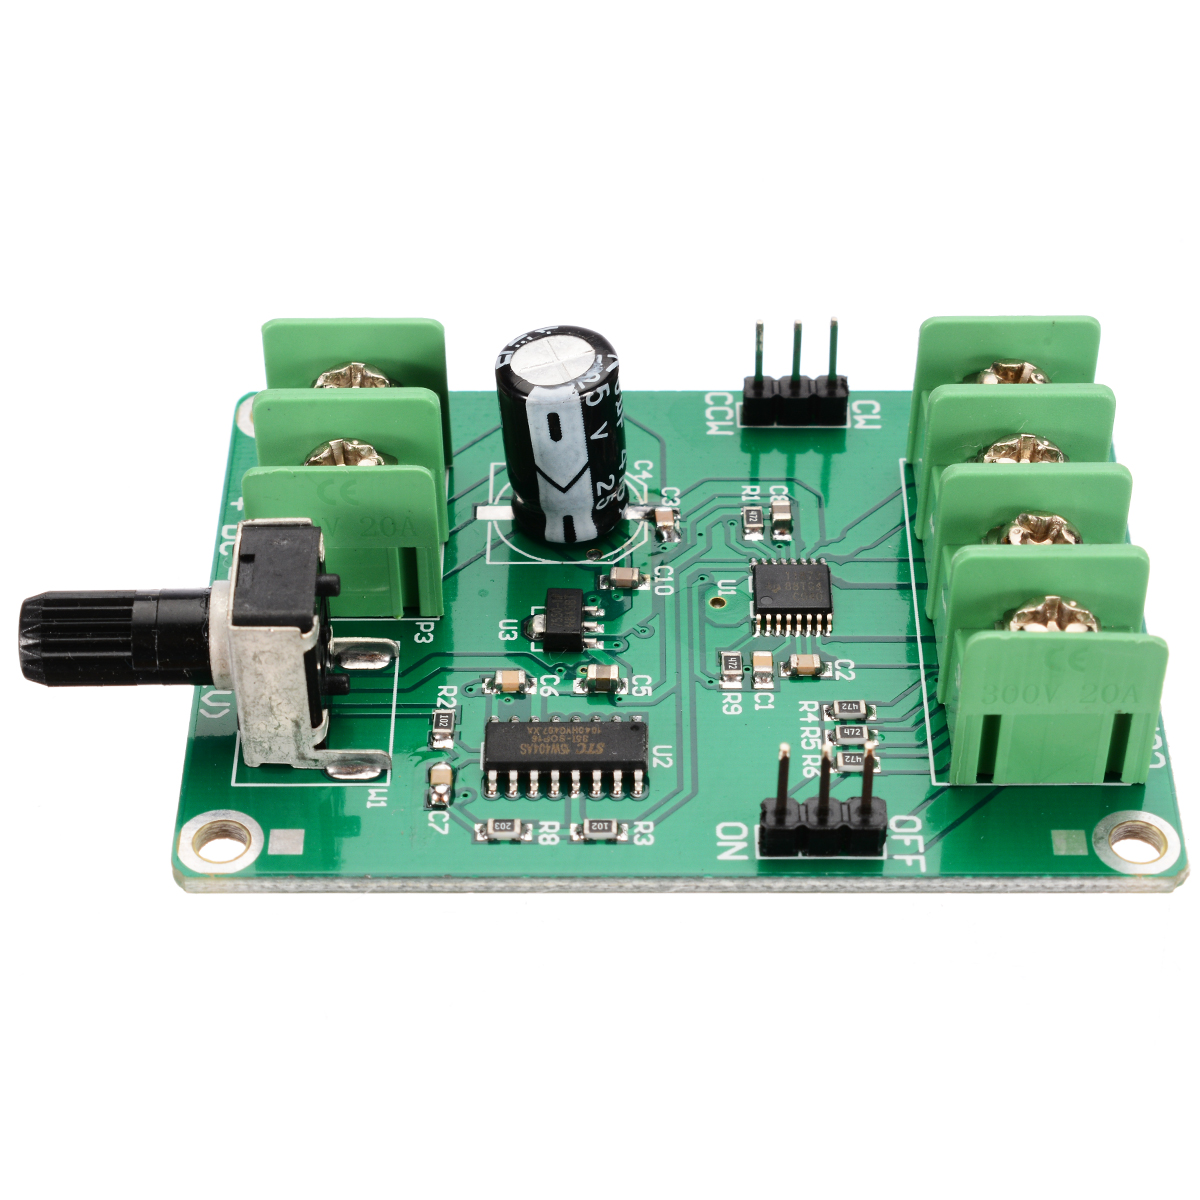 New 5V-12V Dual H-Bridge DC Brushless Motor Driver Module Motor Drive Controller Board For 3/4 Wire Hard Drive Motor